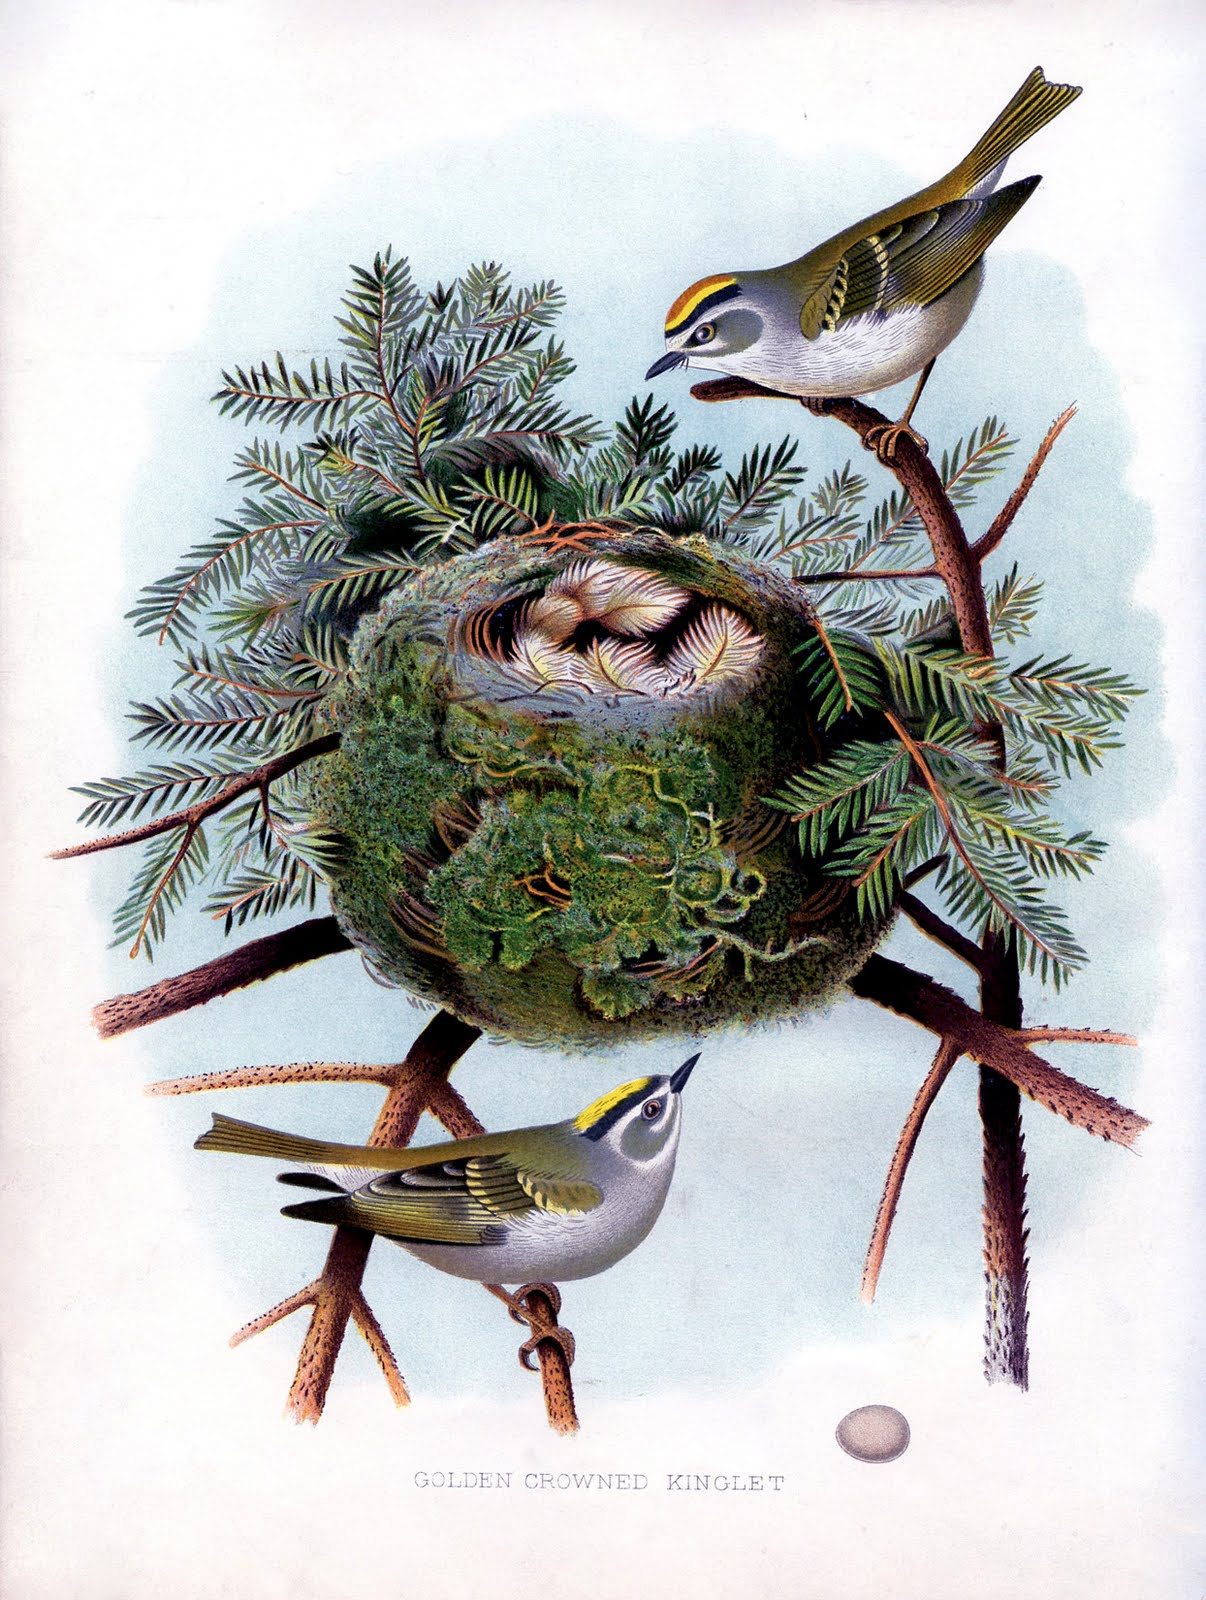 golden crowned kinglet bird nest pine vintage image graphics